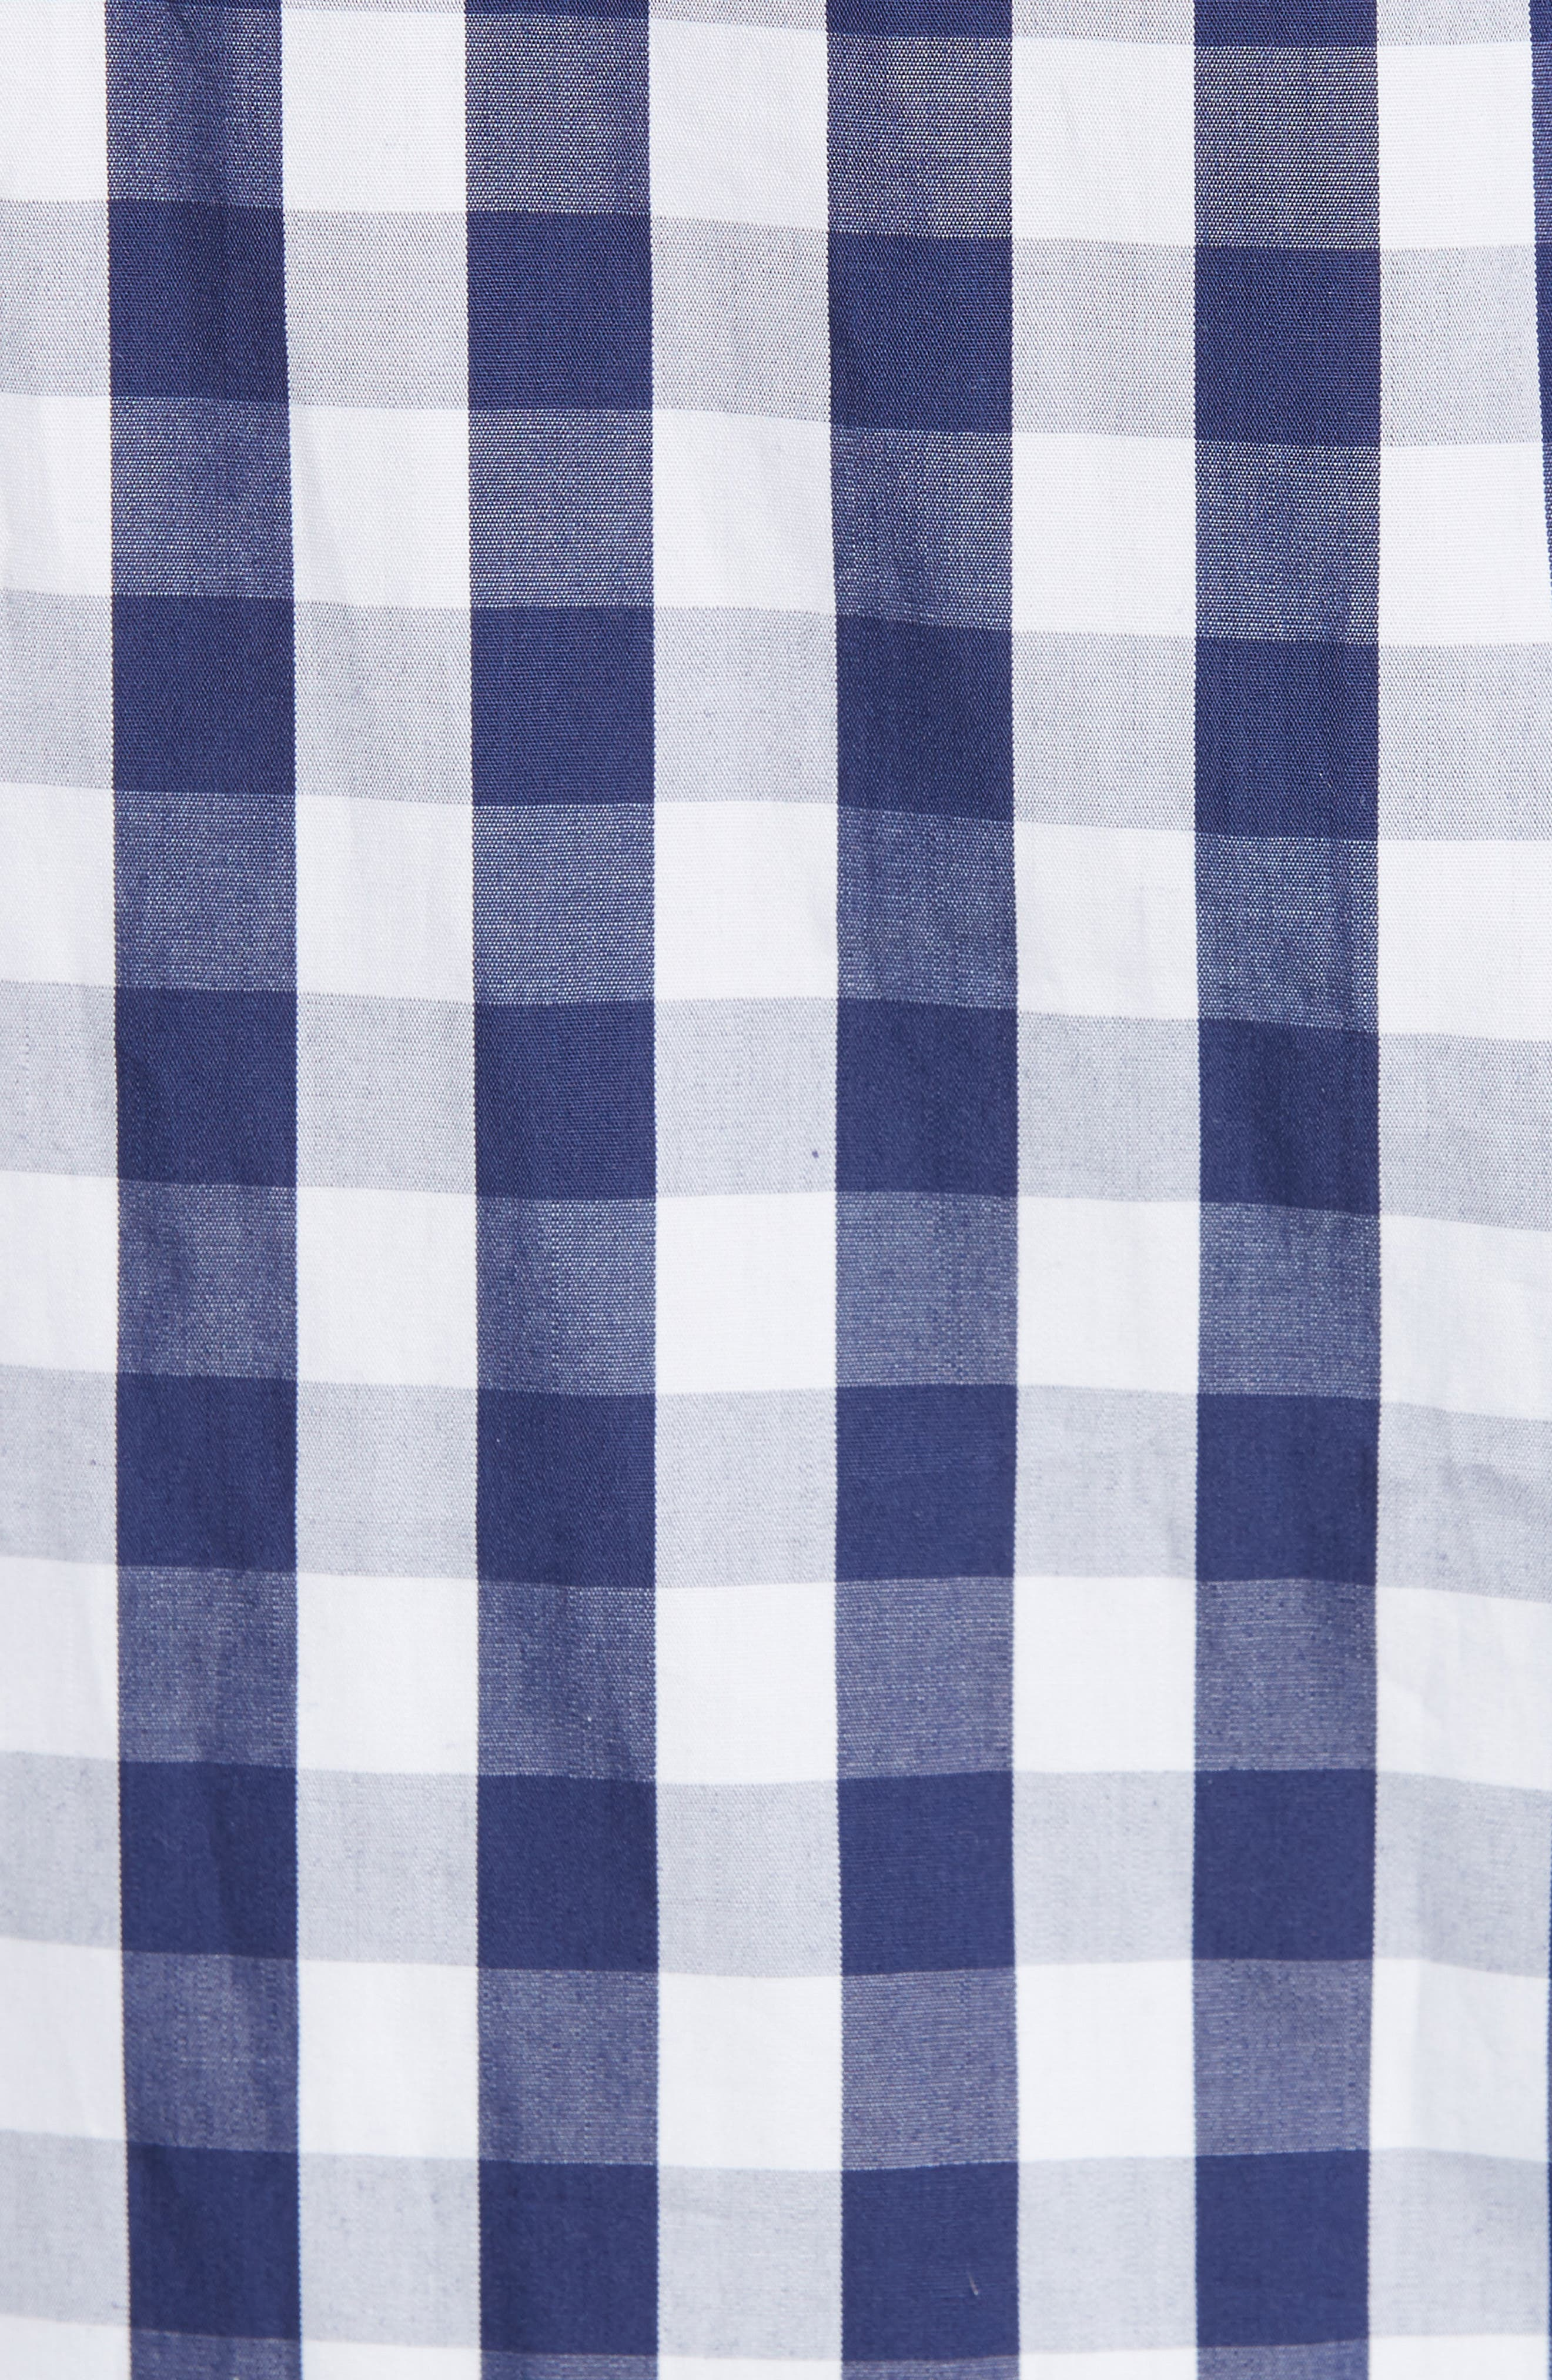 MILLY, Cindy One Shoulder Gingham Top, Alternate thumbnail 5, color, 410